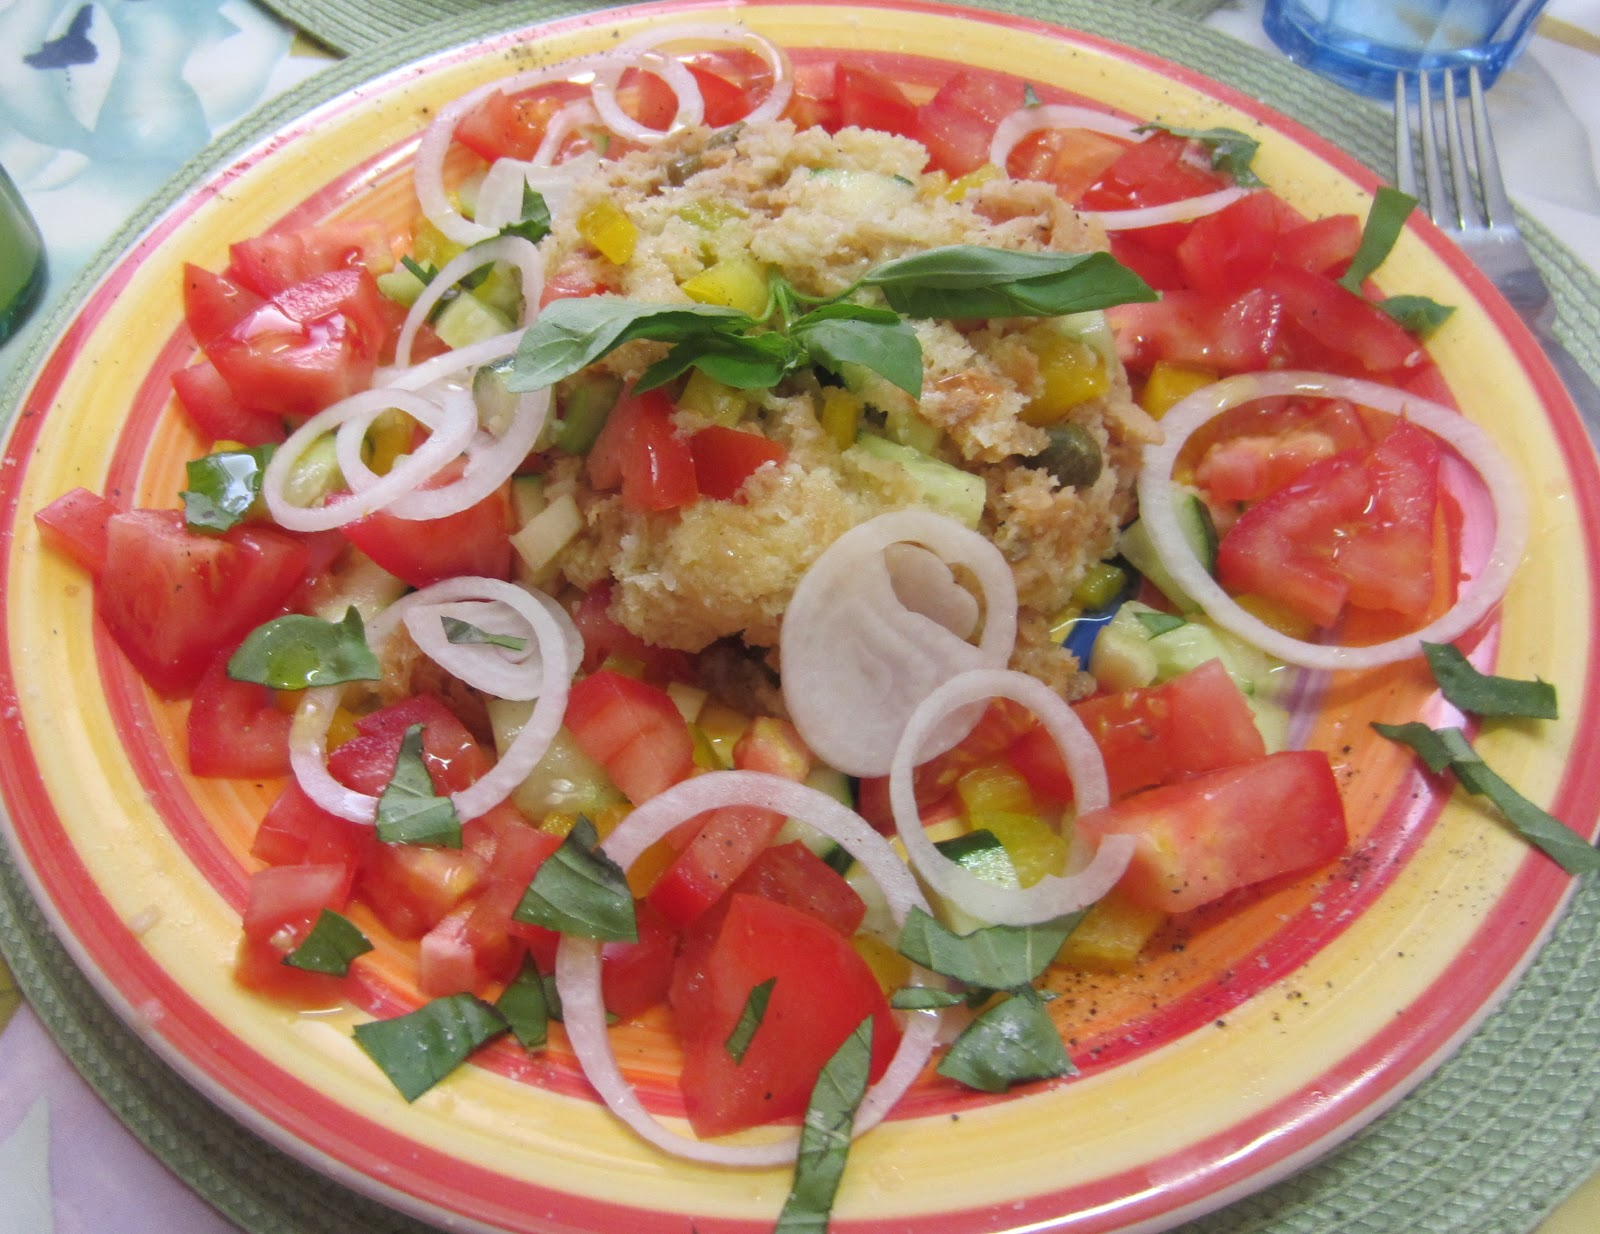 Frugal fitness frugal healthy recipe video panzanella frugal healthy recipe video panzanella forumfinder Image collections